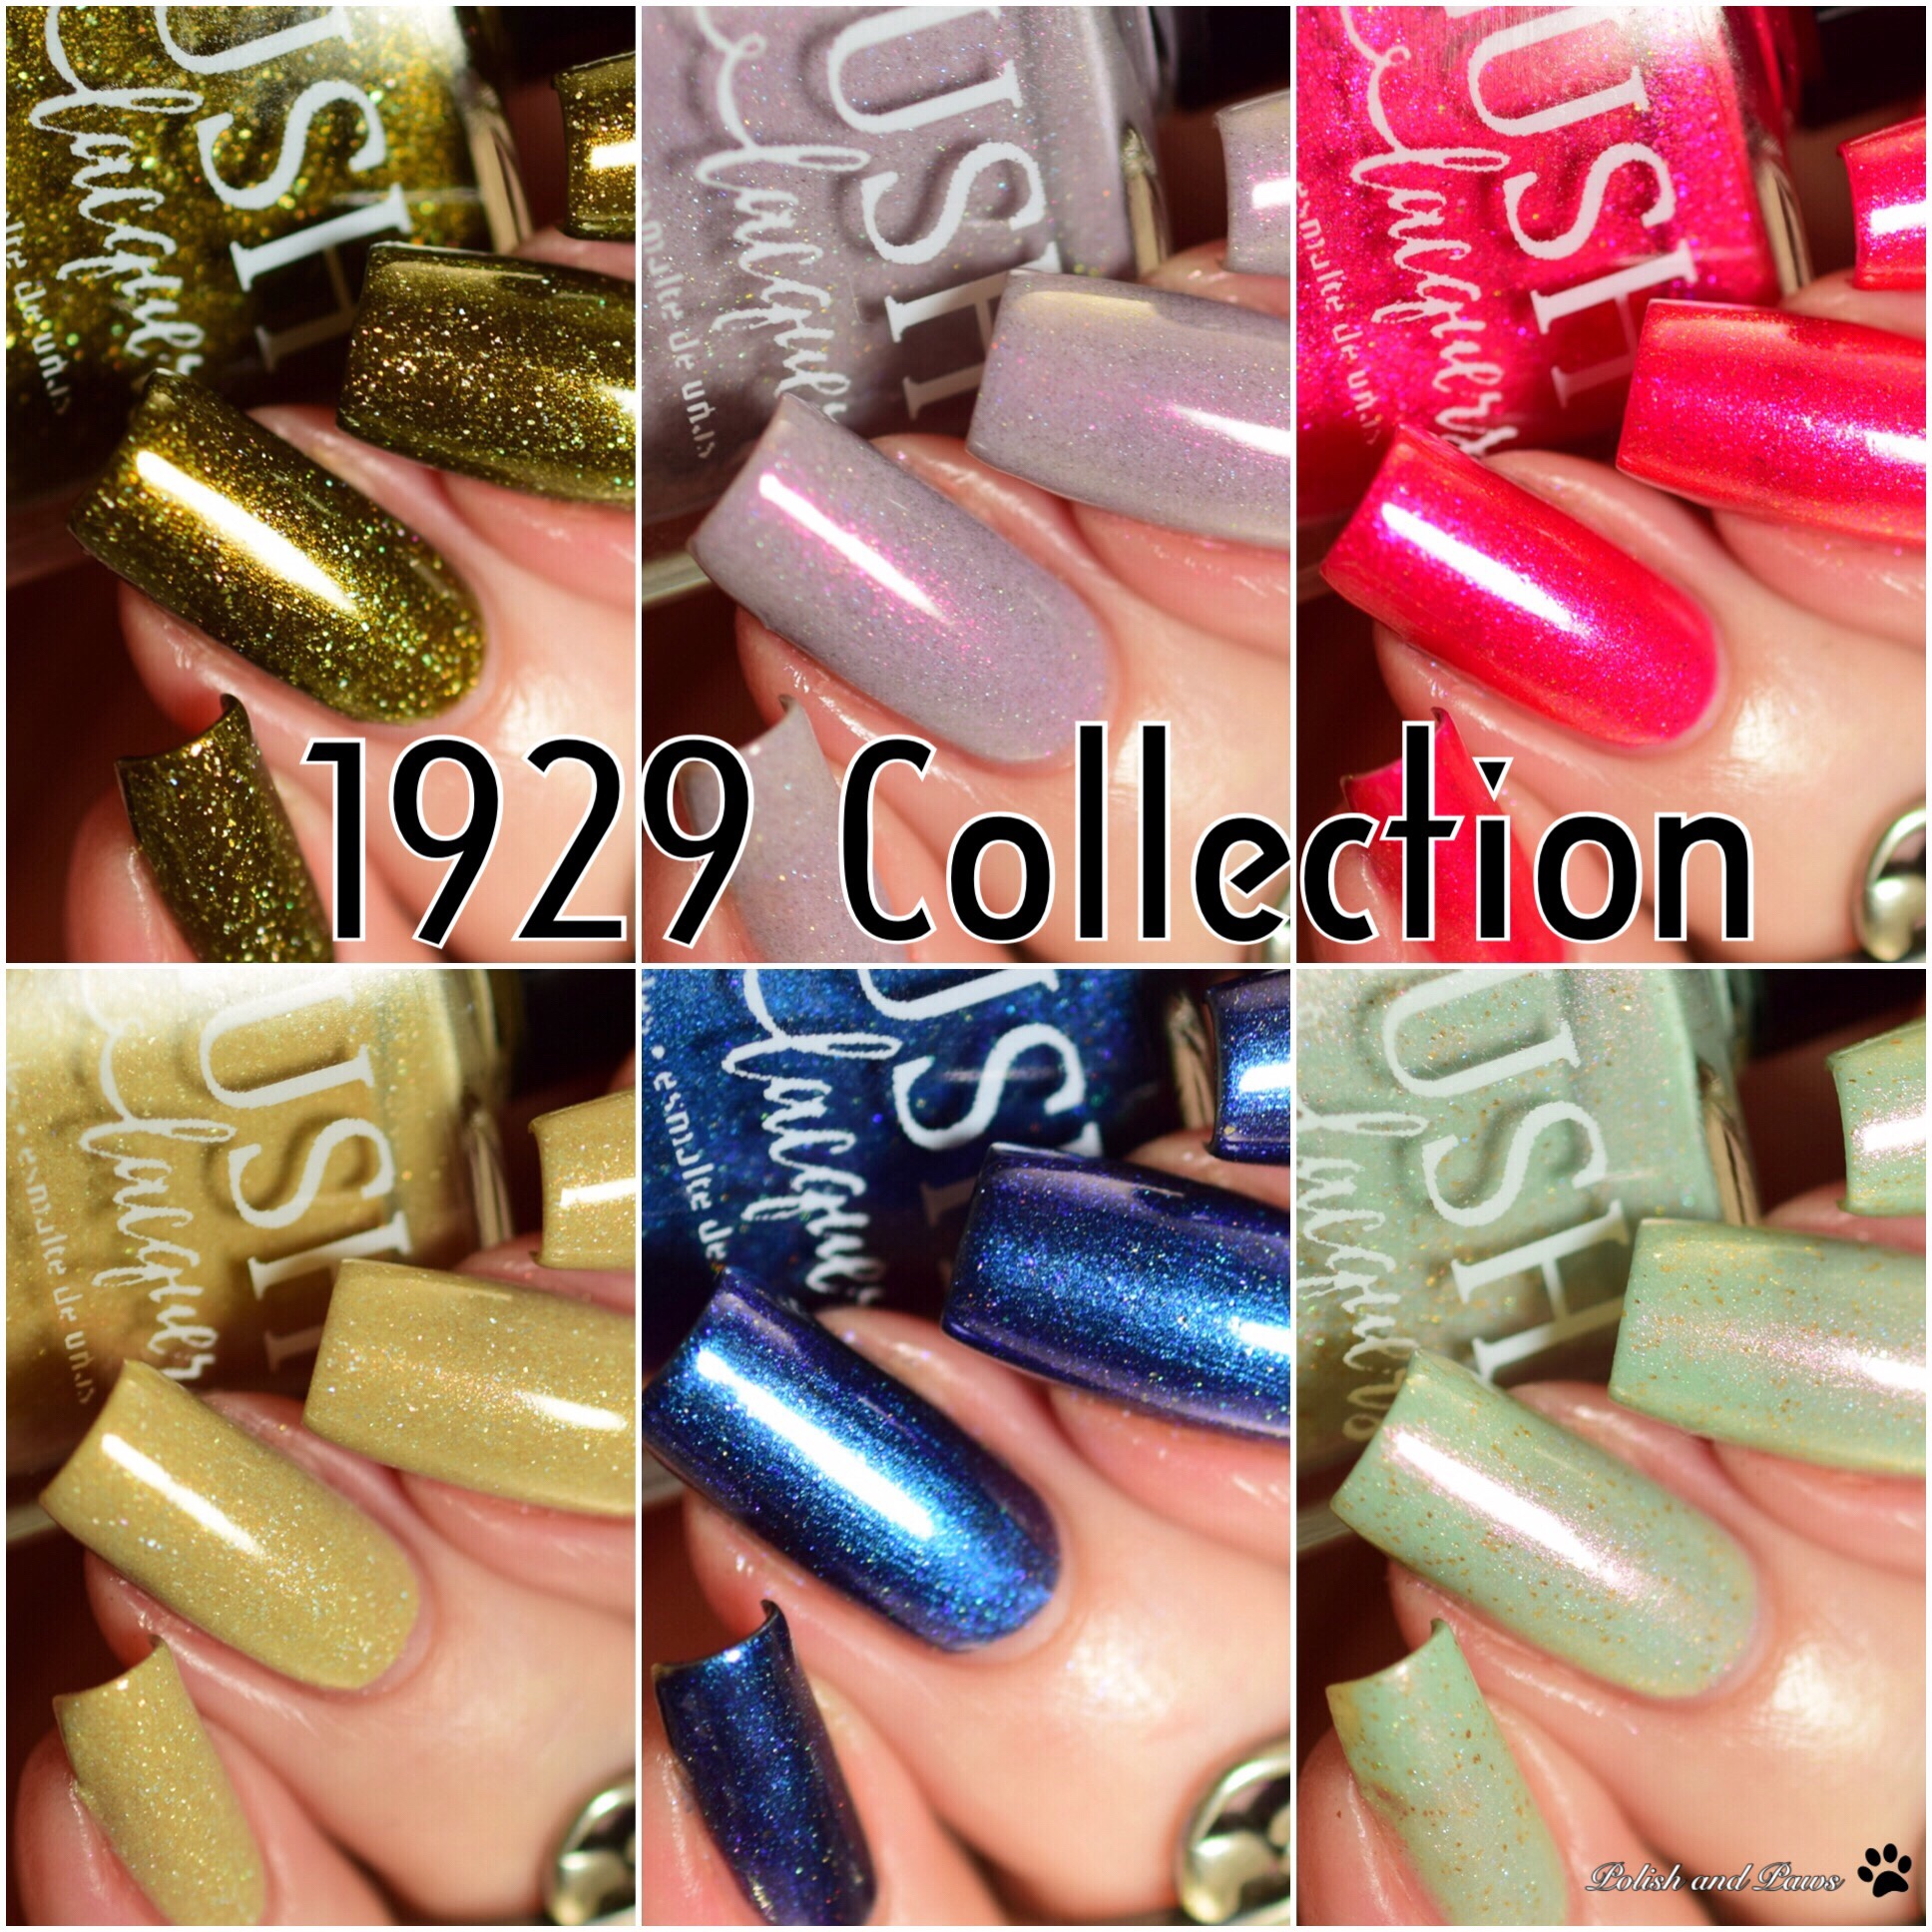 Blush Lacquers 1929 Collection